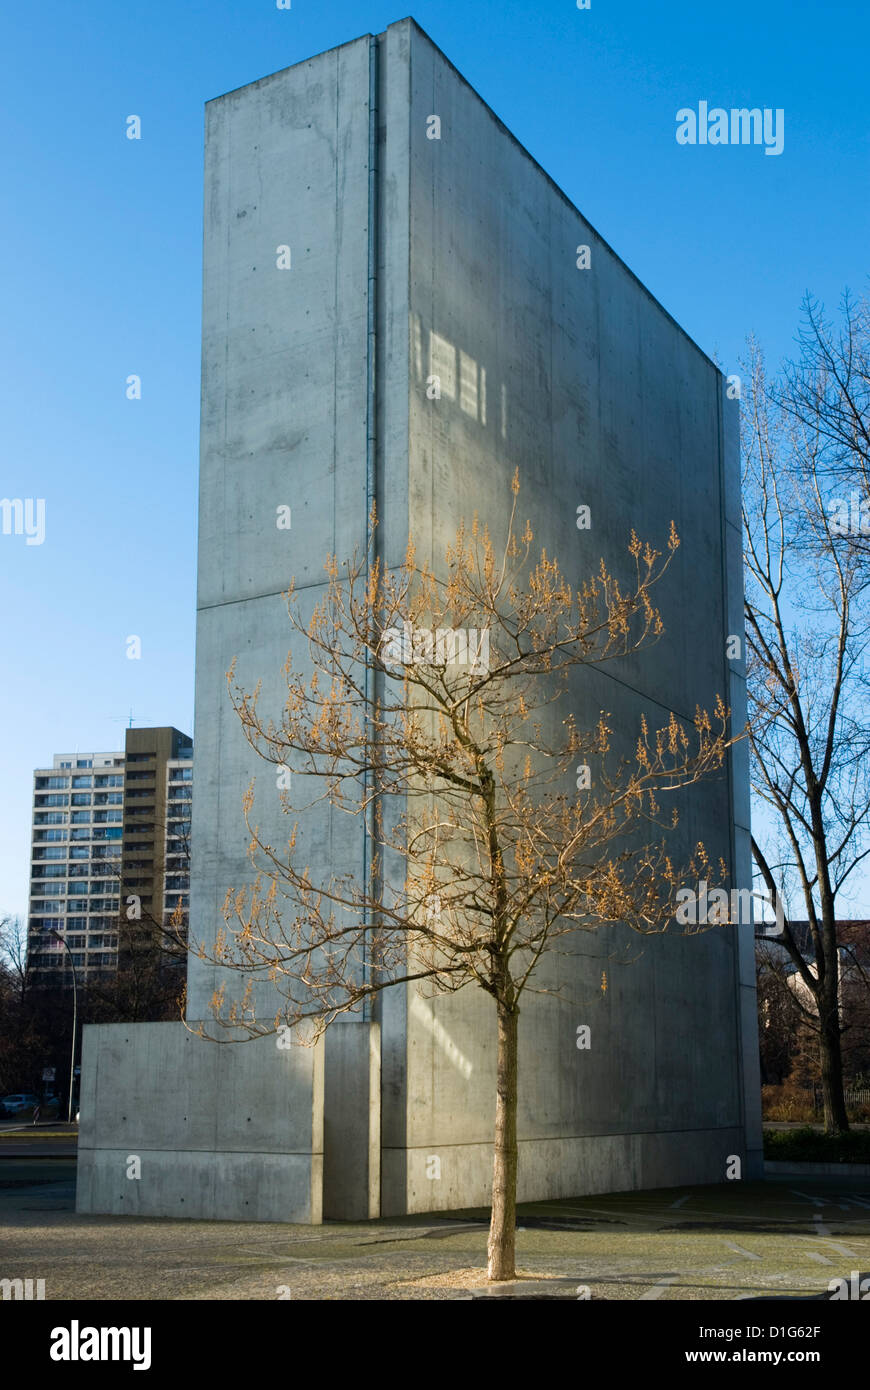 Judisches Museum (Jewish Museum) designed by Daniel Libeskind, Berlin, Germany, Europe - Stock Image